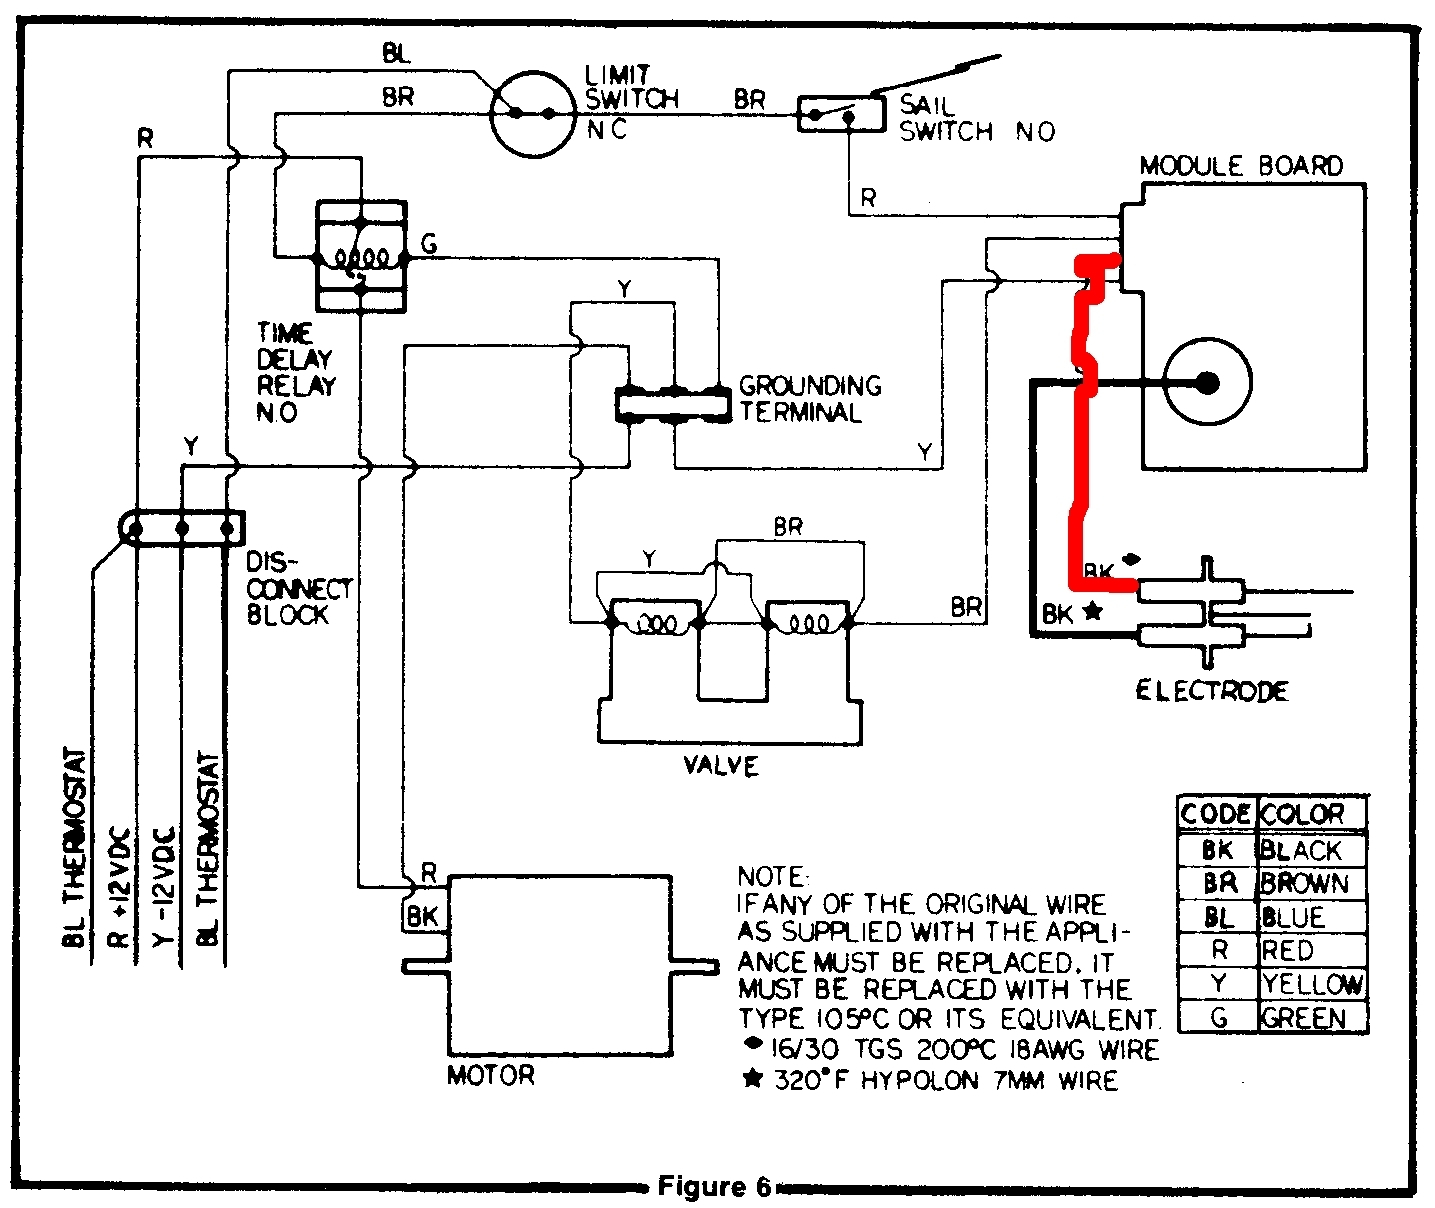 dometic capacitive touch thermostat wiring diagram Download-Dometic Rv thermostat Wiring Diagram Wiring Diagram Mesmerizing 3-k